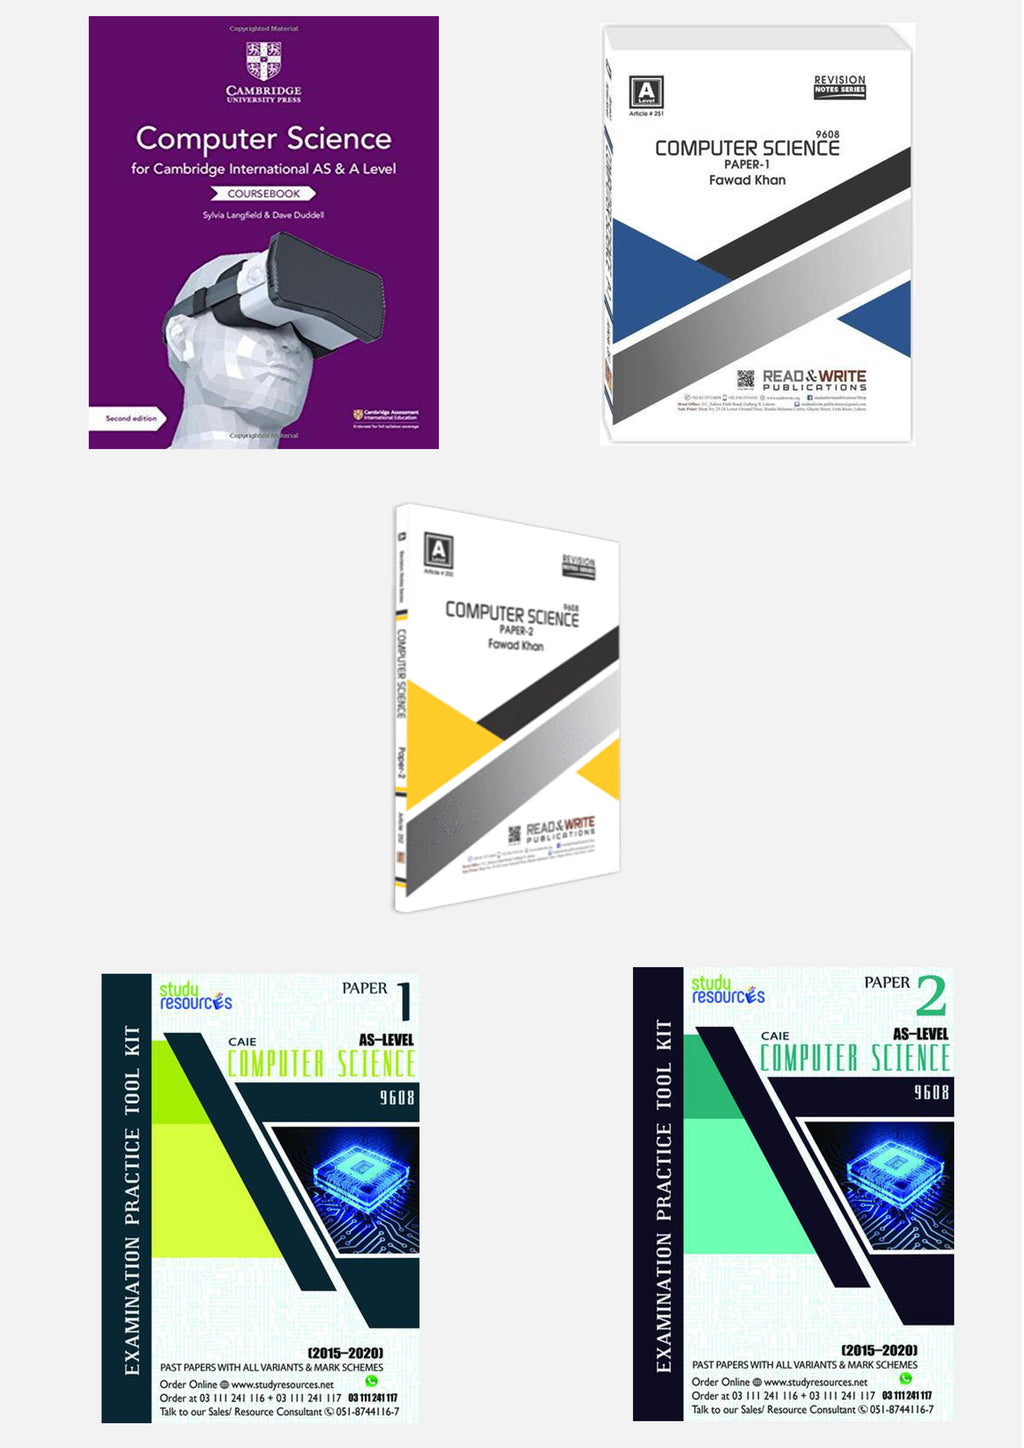 Cambridge AS-Level Computer Science (9608) Exam Success Resource Bundle (CUSTOMIZABLE)